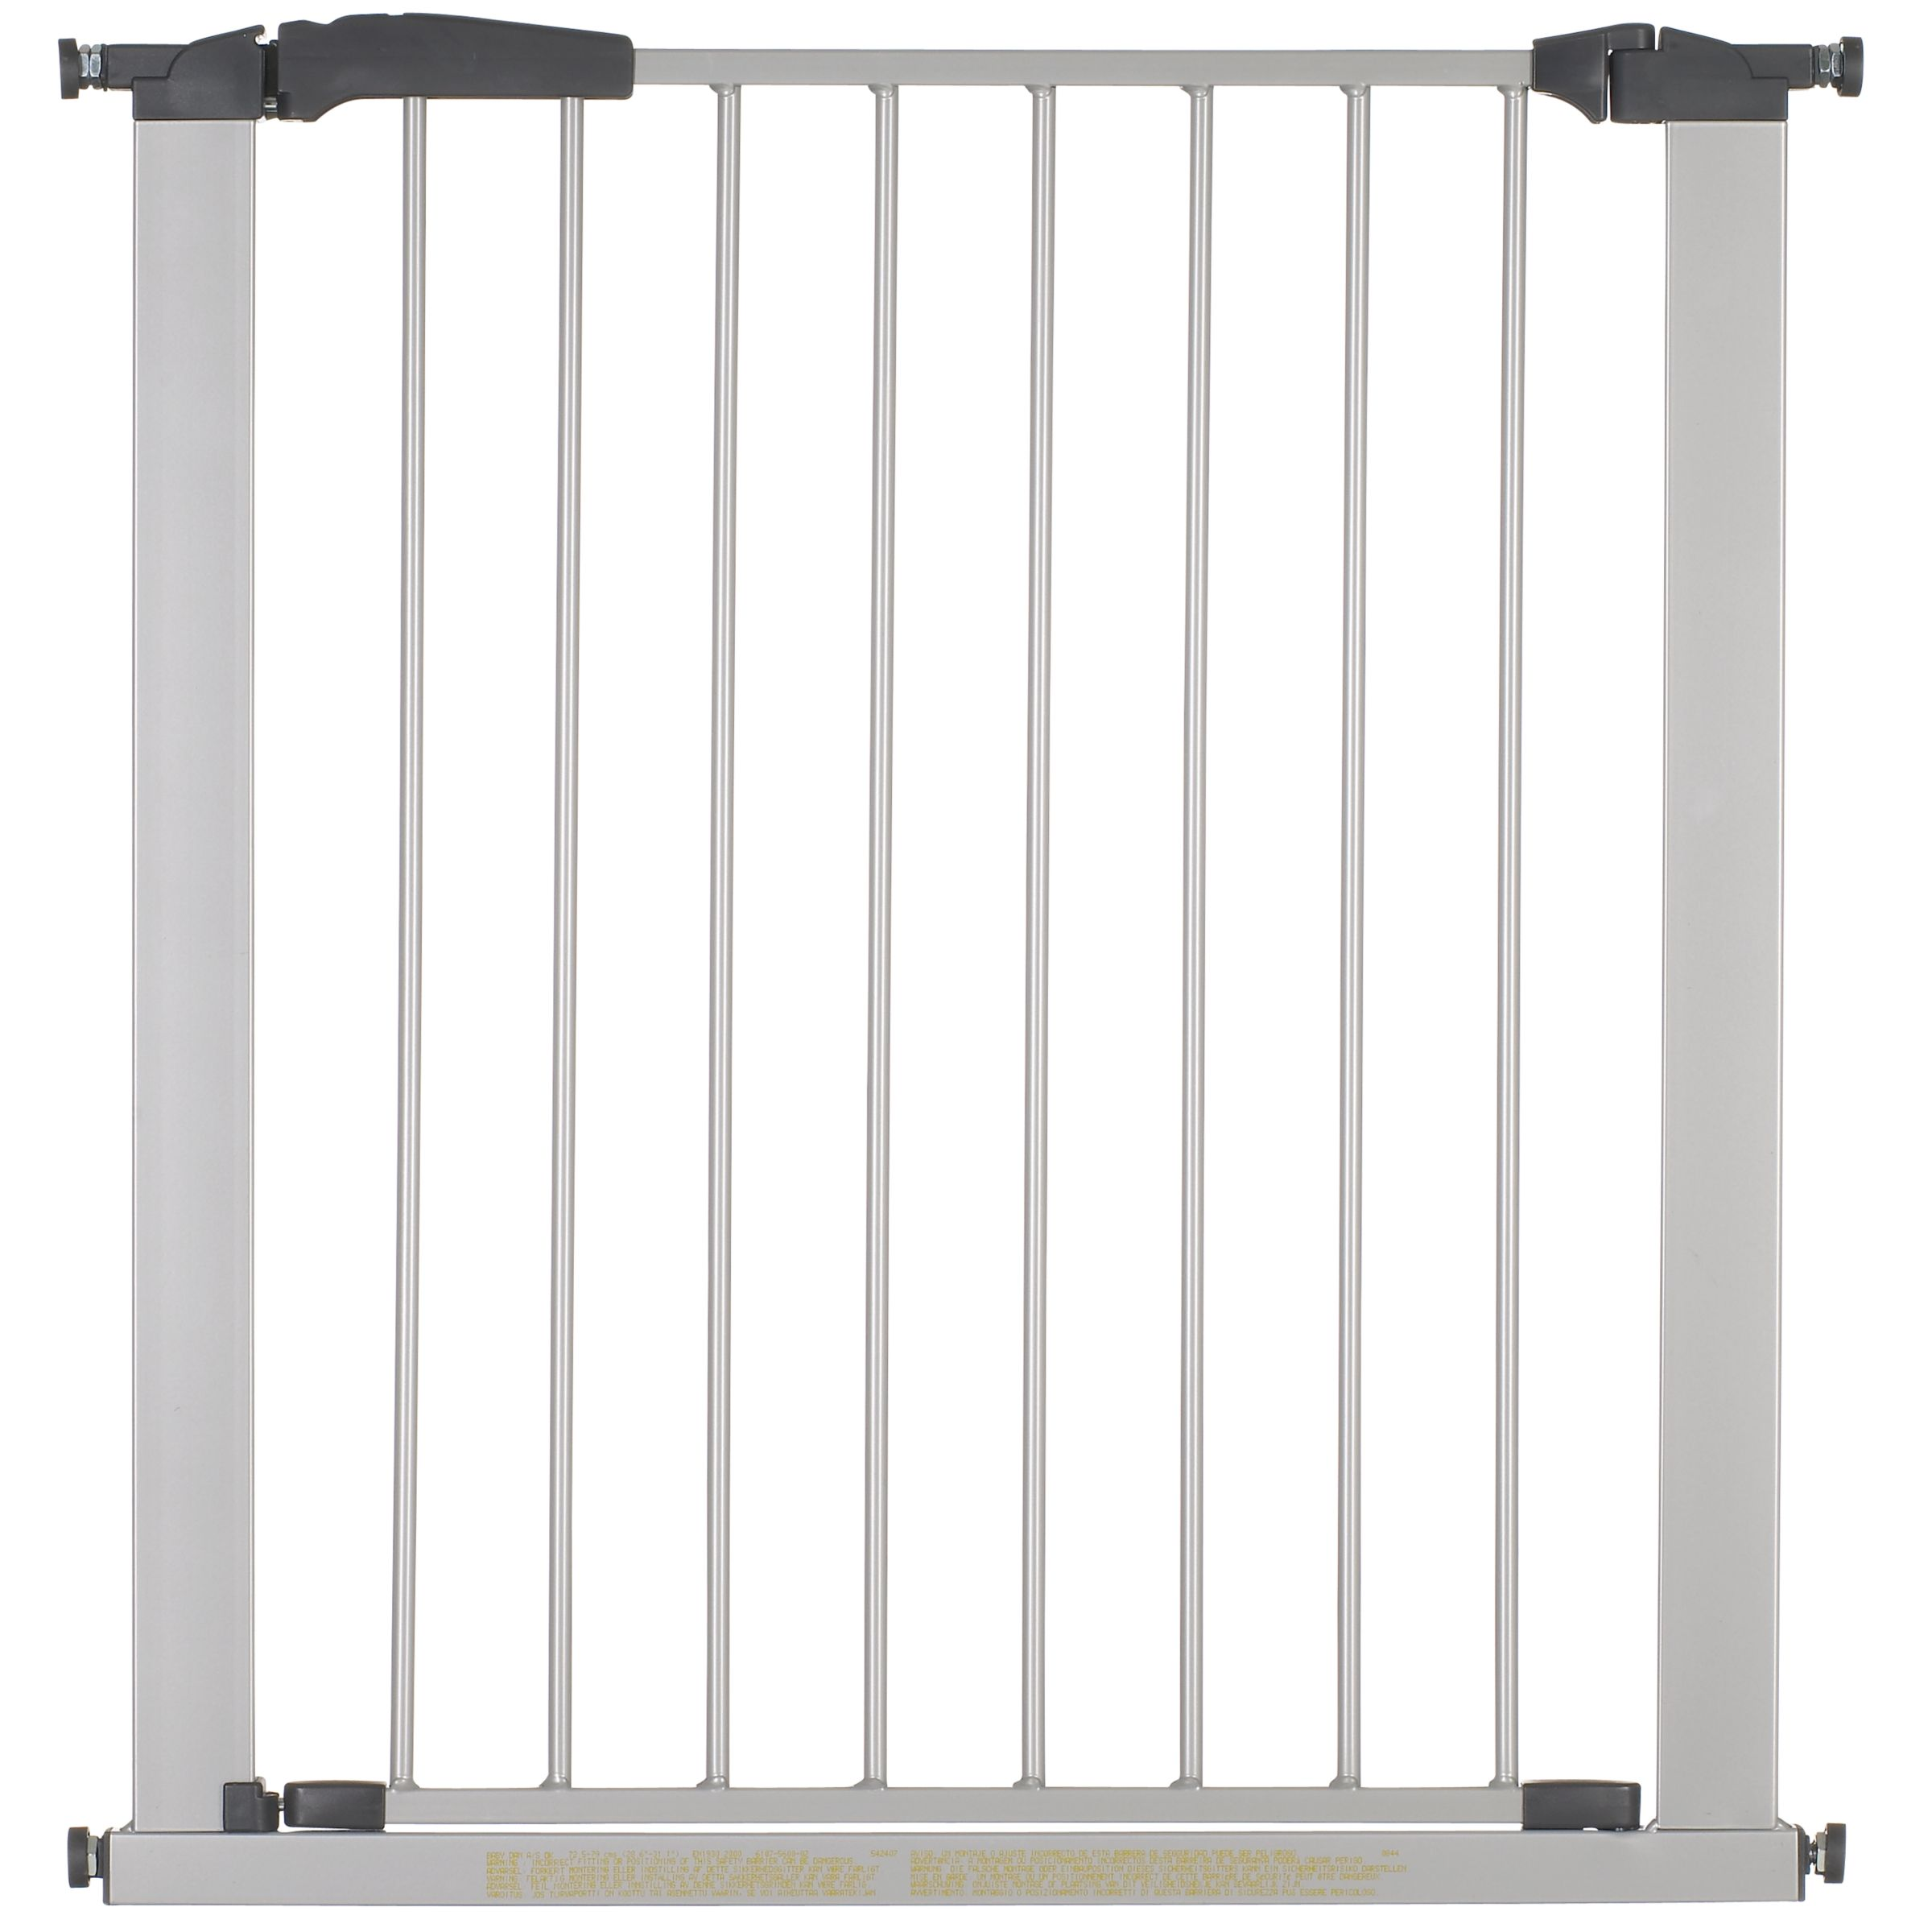 Swing Shut Safety Gate, Silver 230653171